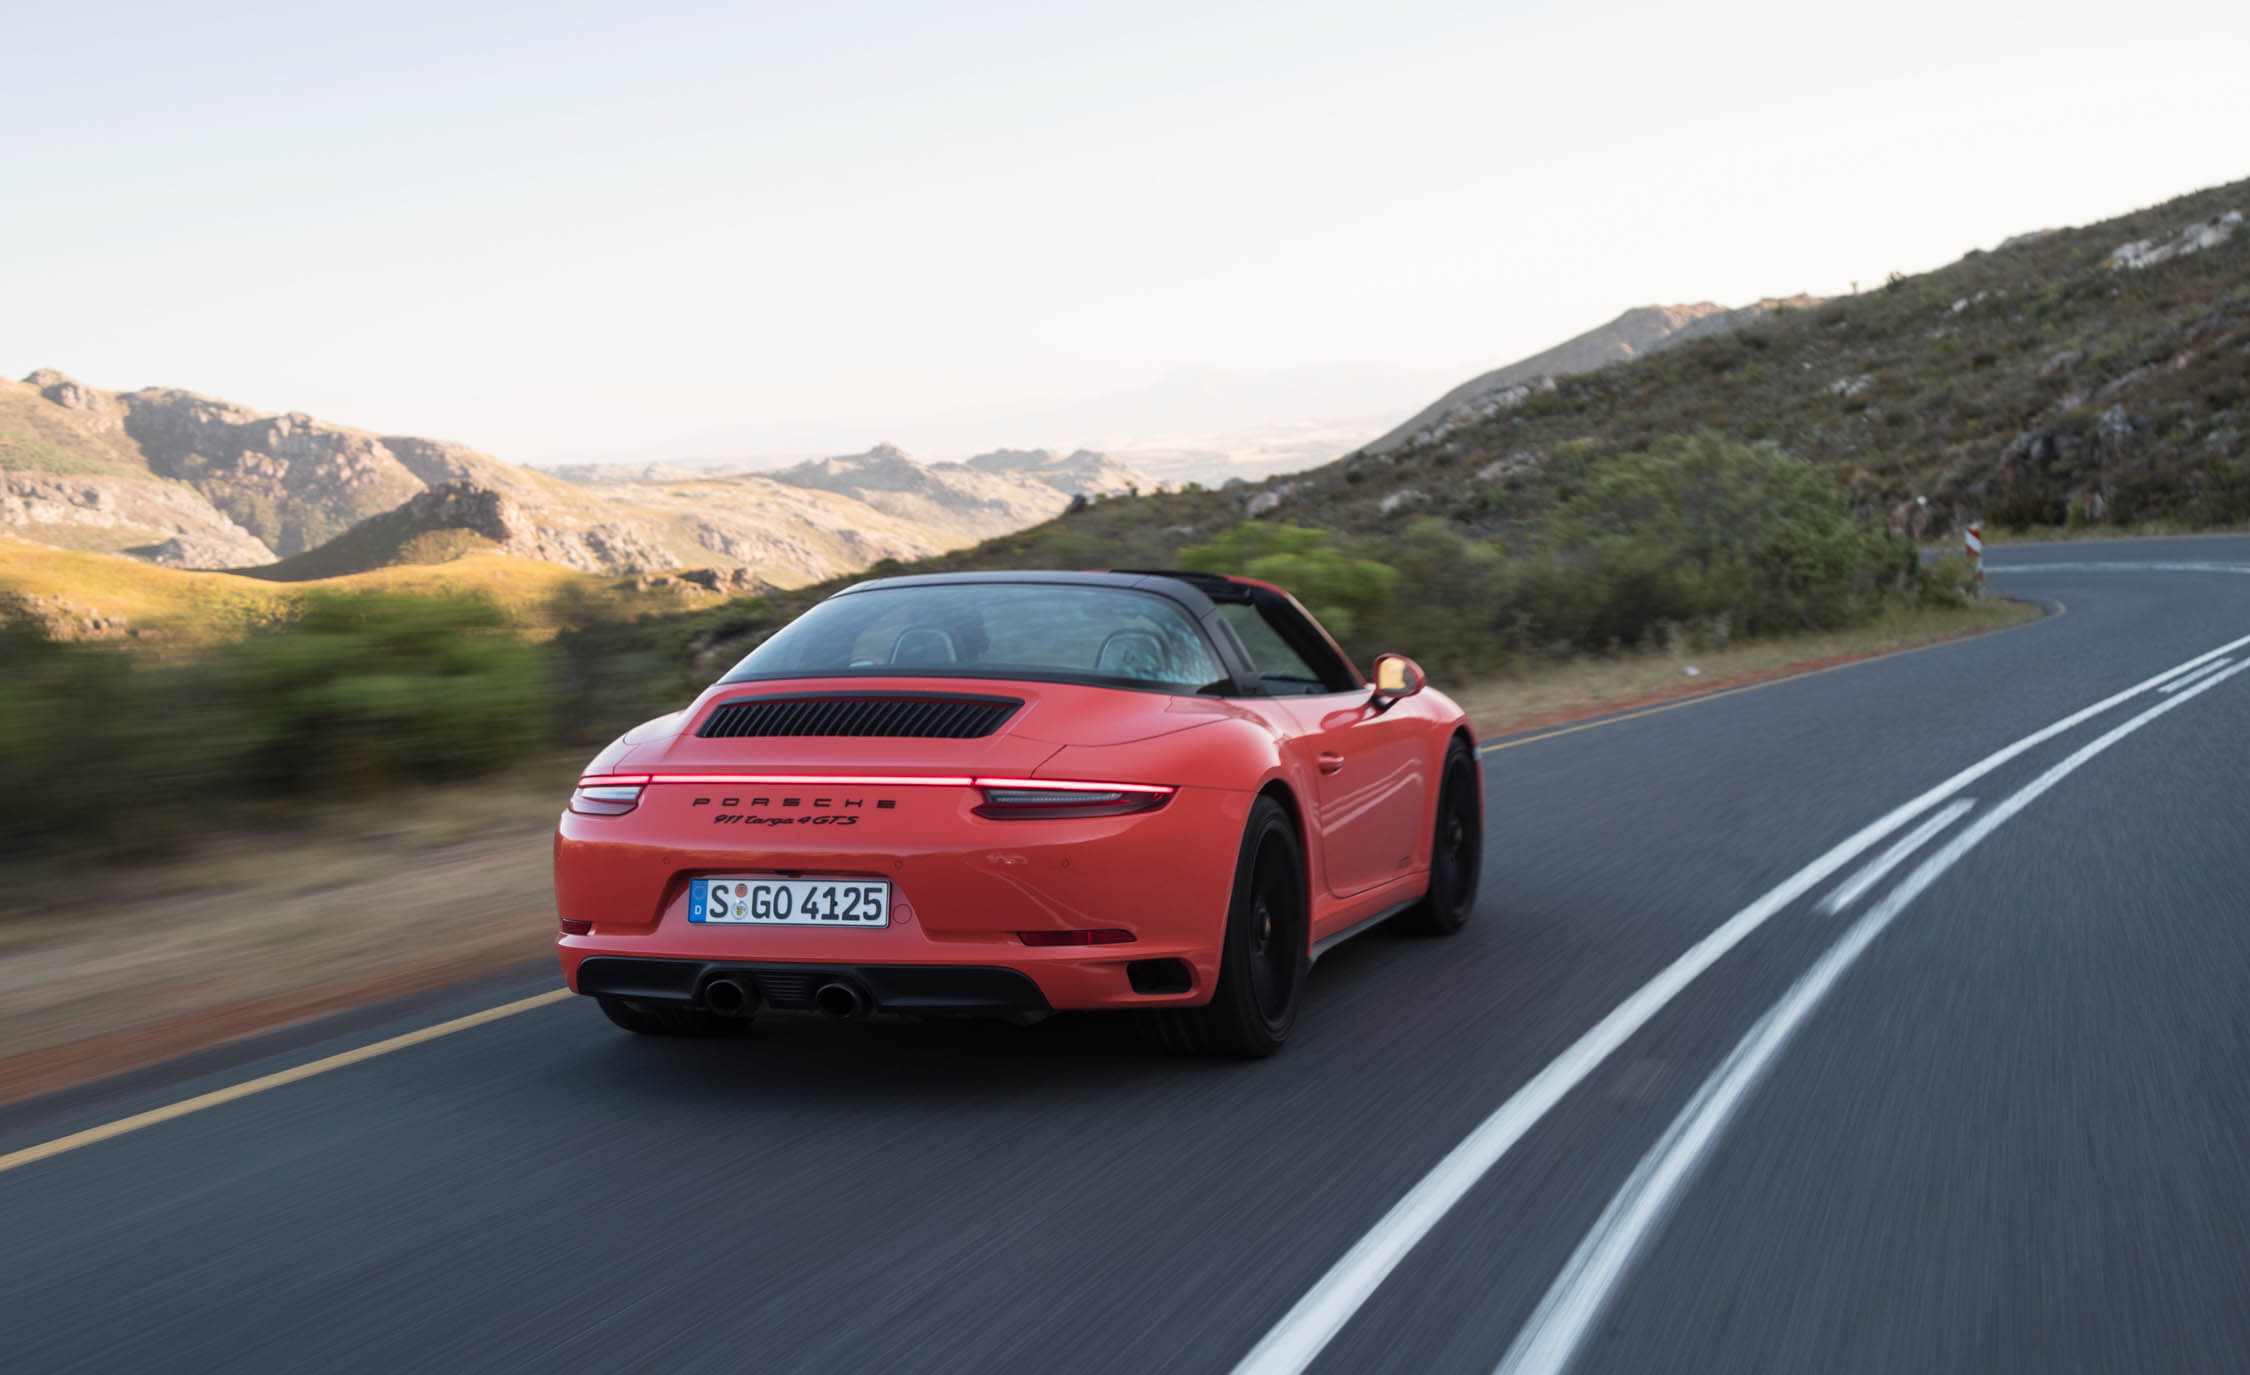 2017 Porsche 911 Targa 4 GTS Test Drive Rear Corner (Photo 94 of 97)